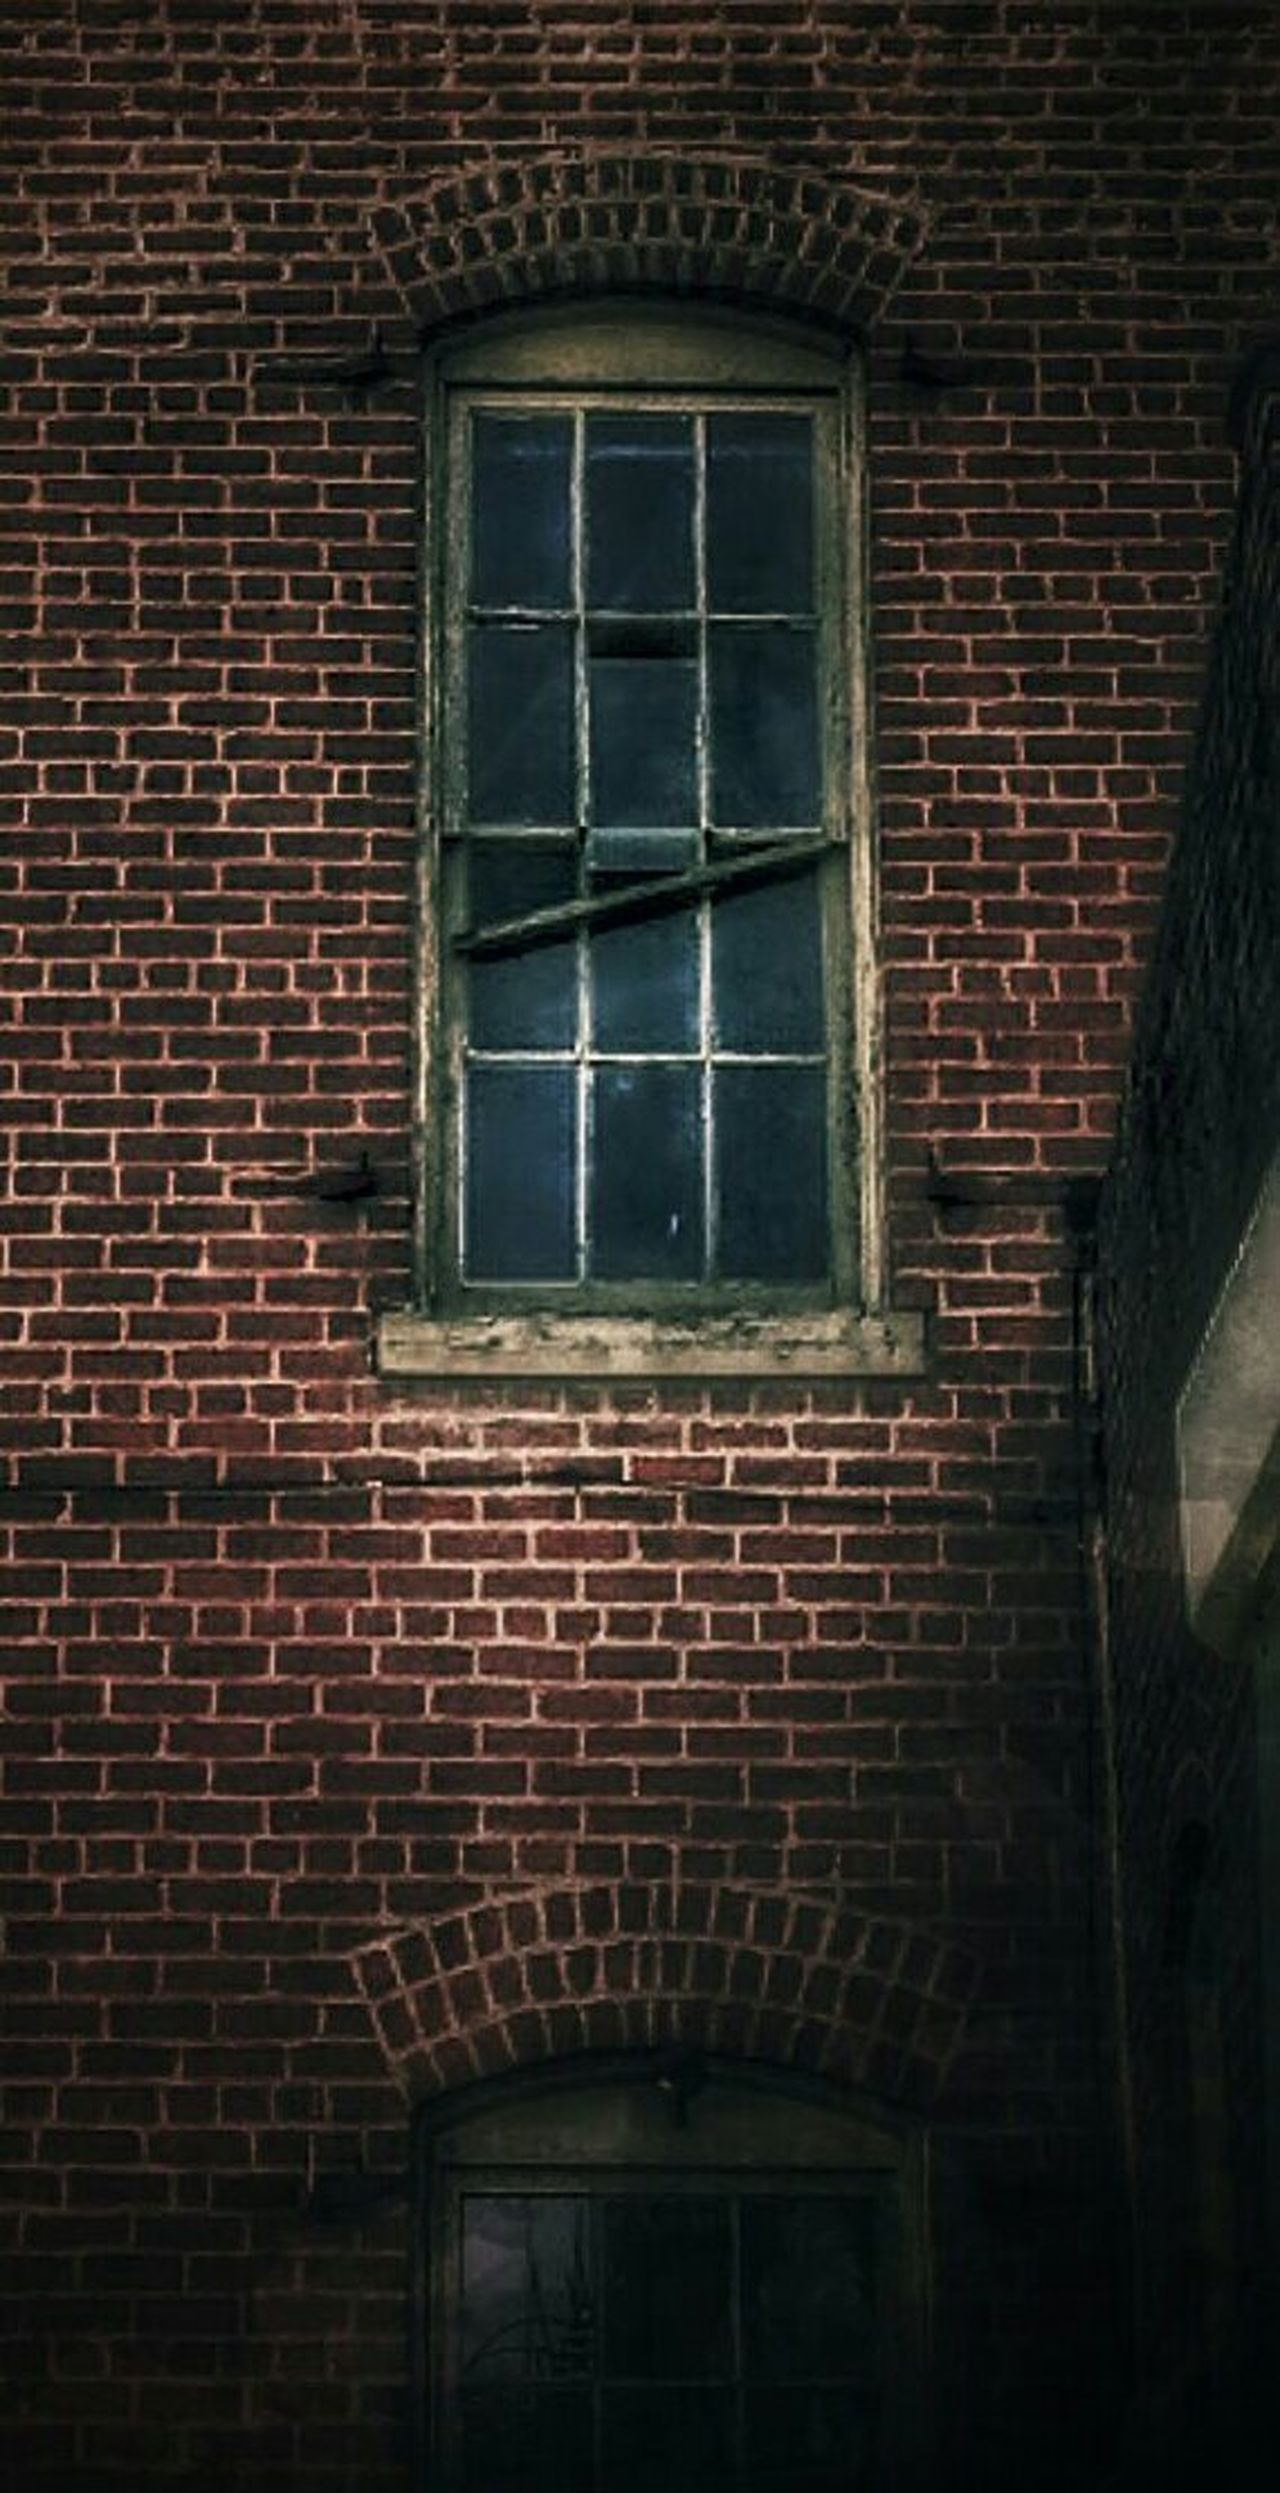 One is the loneliest number that you'll ever do...Two can be bad as one...It's the loneliest number since the number one... Building Exterior Brick Wall Built Structure BOB Brick Old Building Brickporn Brick Wall Weathered Creepy Atmoshpere AMPt - Street Broken Window EyeEm Gallery Abandoned Buildings Creepy Building AMPt - My Perspective Creepy Houses Abandoned & Derelict Deterioration AMPt - Abandon Urban Lifestyle Tresspassing For Art Low Angle View Abandoned Places Damaged Urban